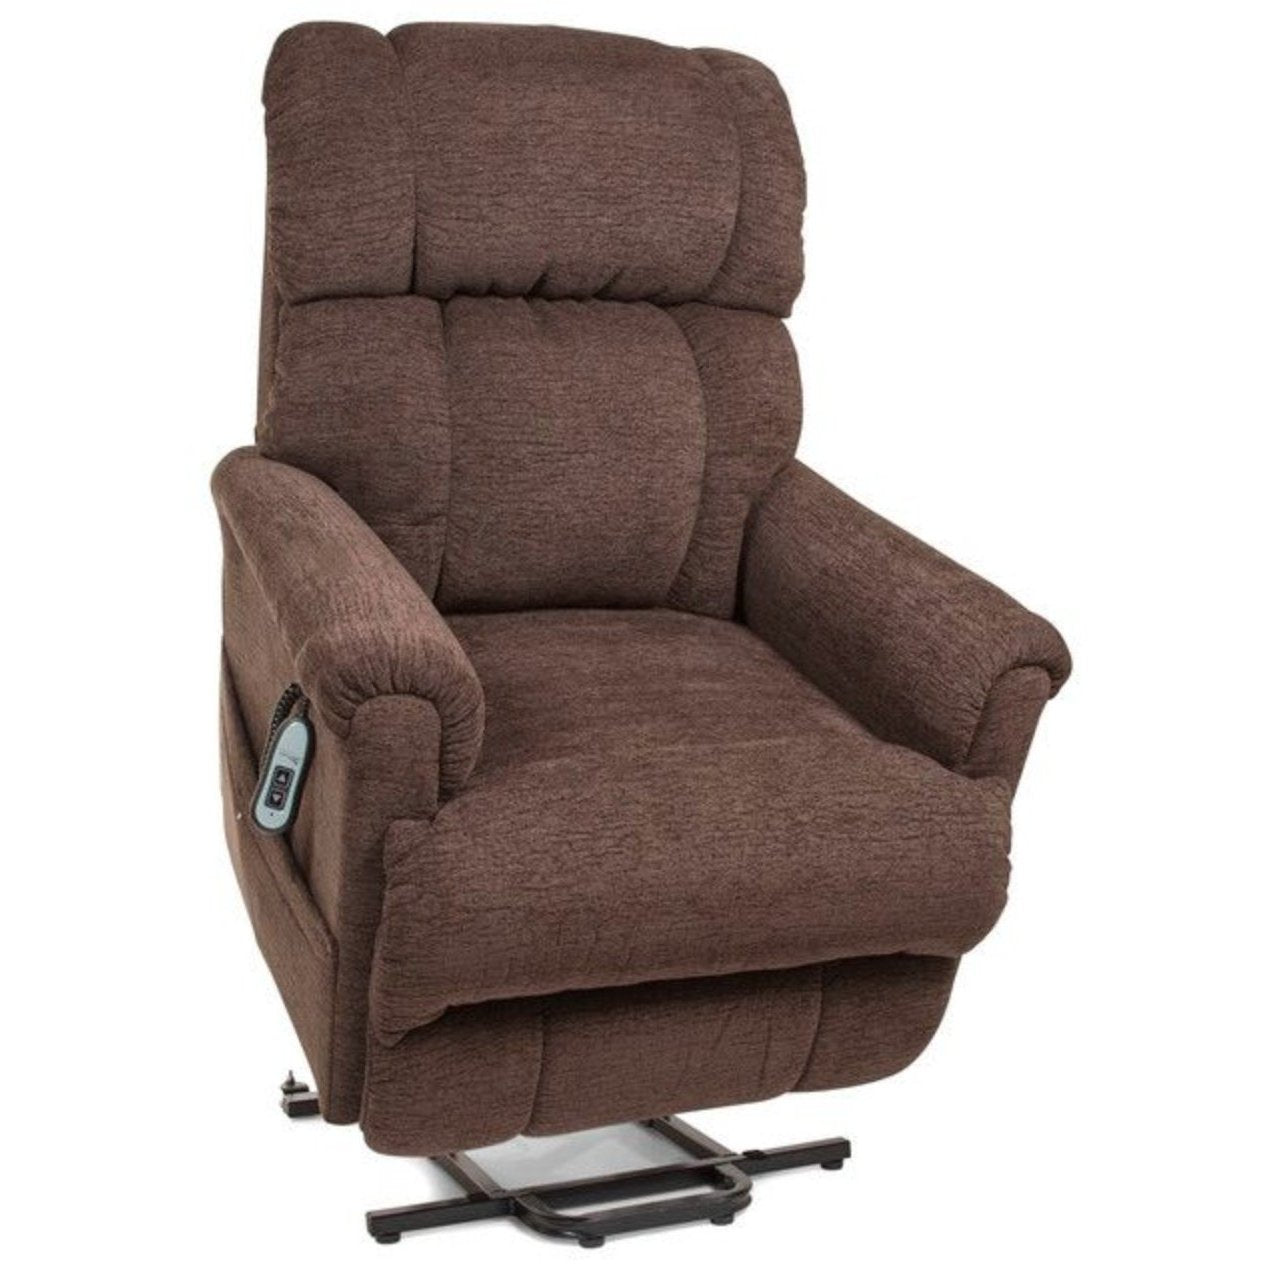 trim ultra lift threshold width ultracomfort zaa height recliner shown large montage montagelarge furniture comforter size item belfort medium collections chair comfort